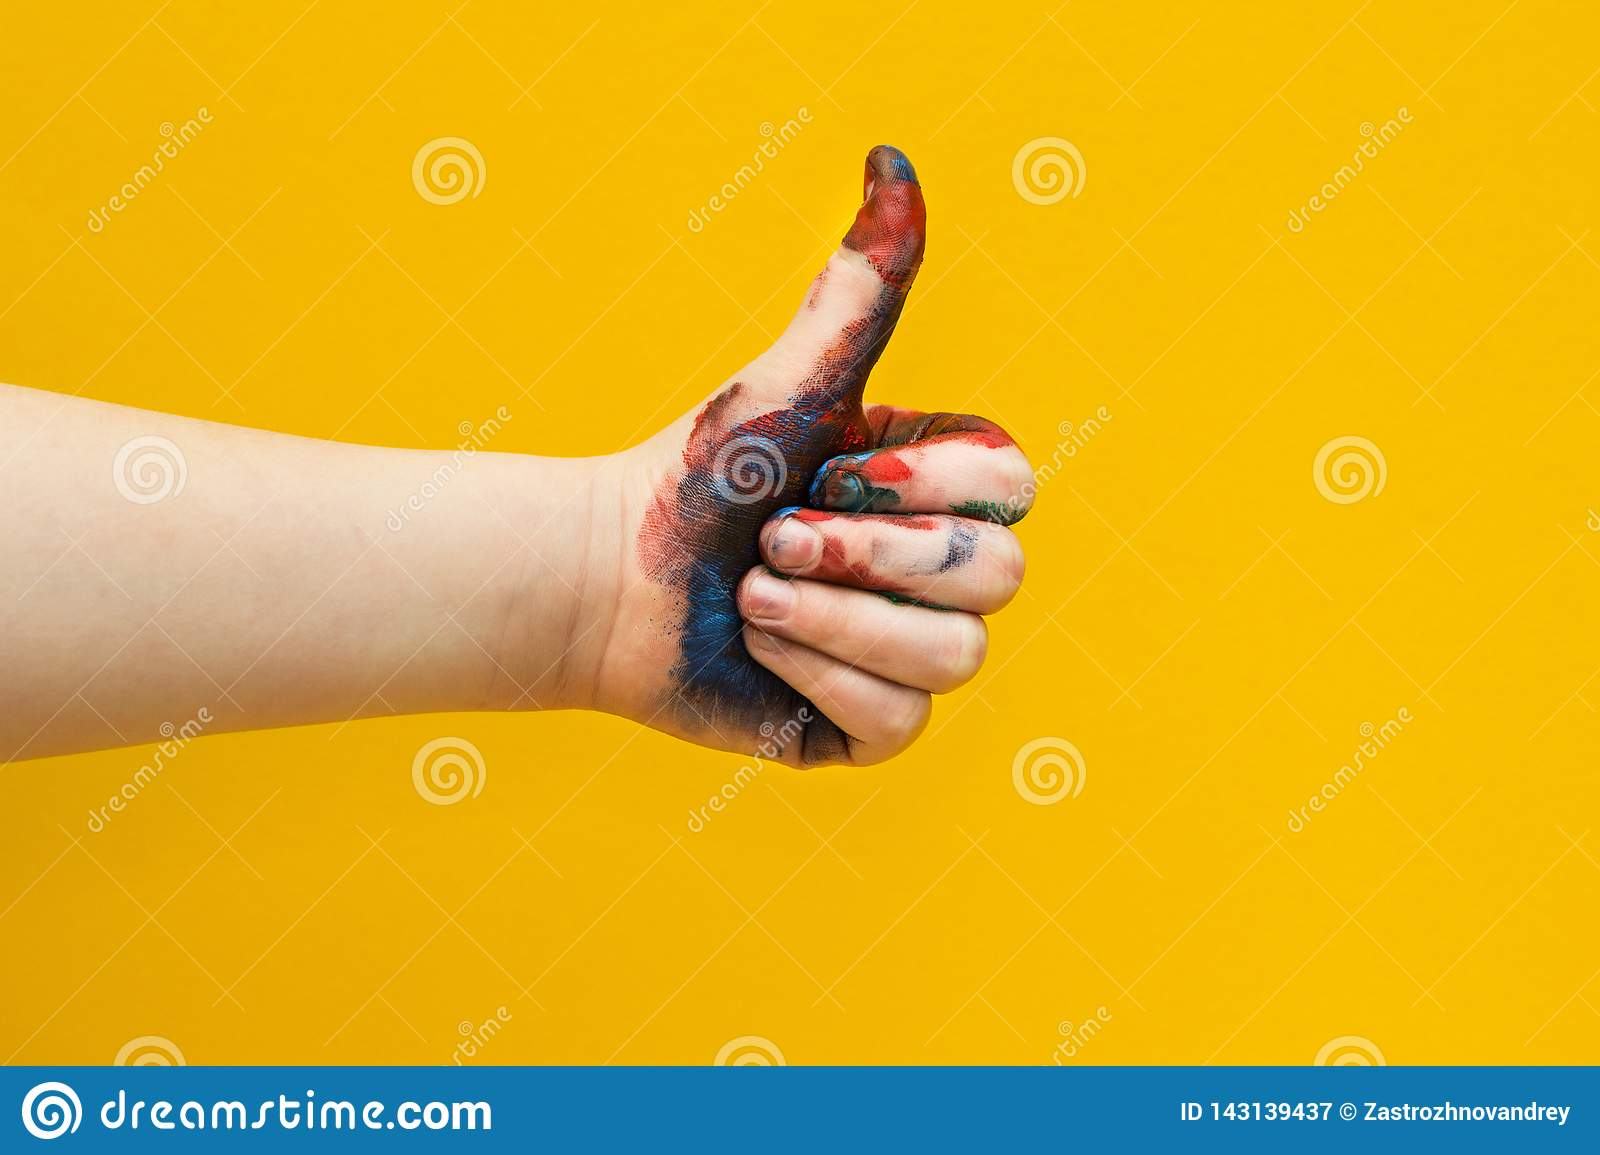 Children`s hand, smeared with multicolored paint on a yellow background. Thumbs up